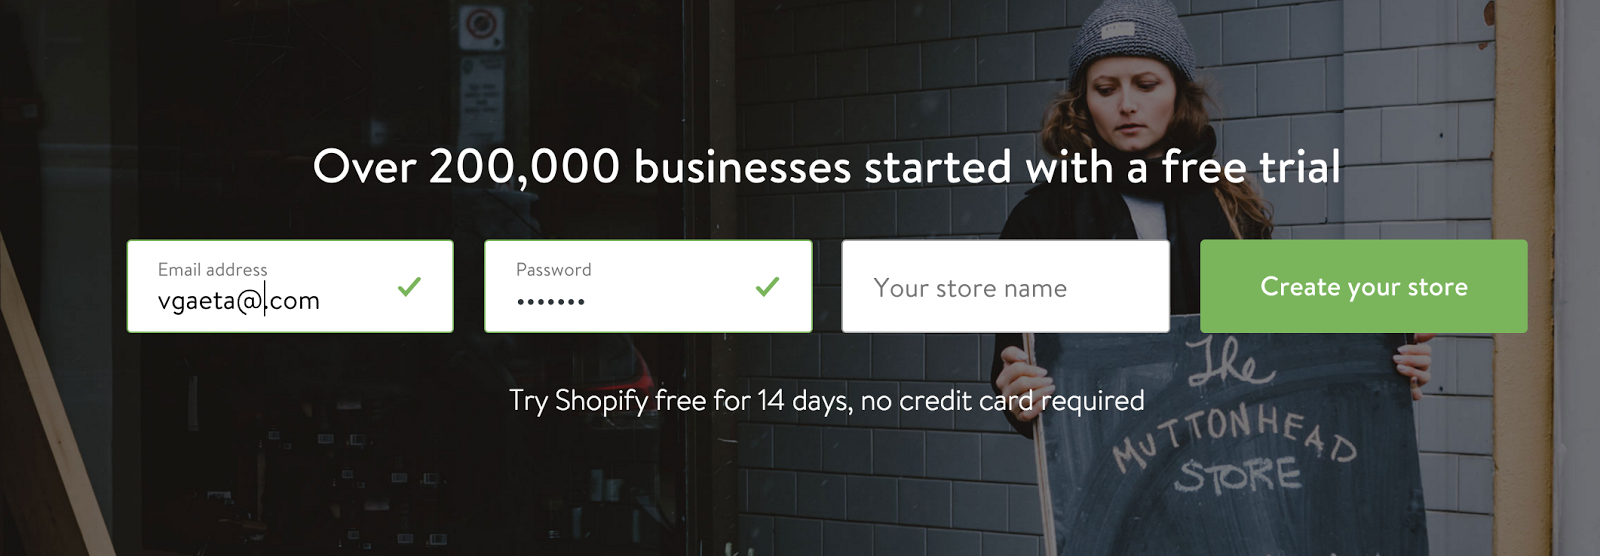 Shopify-clean-form-labels.png